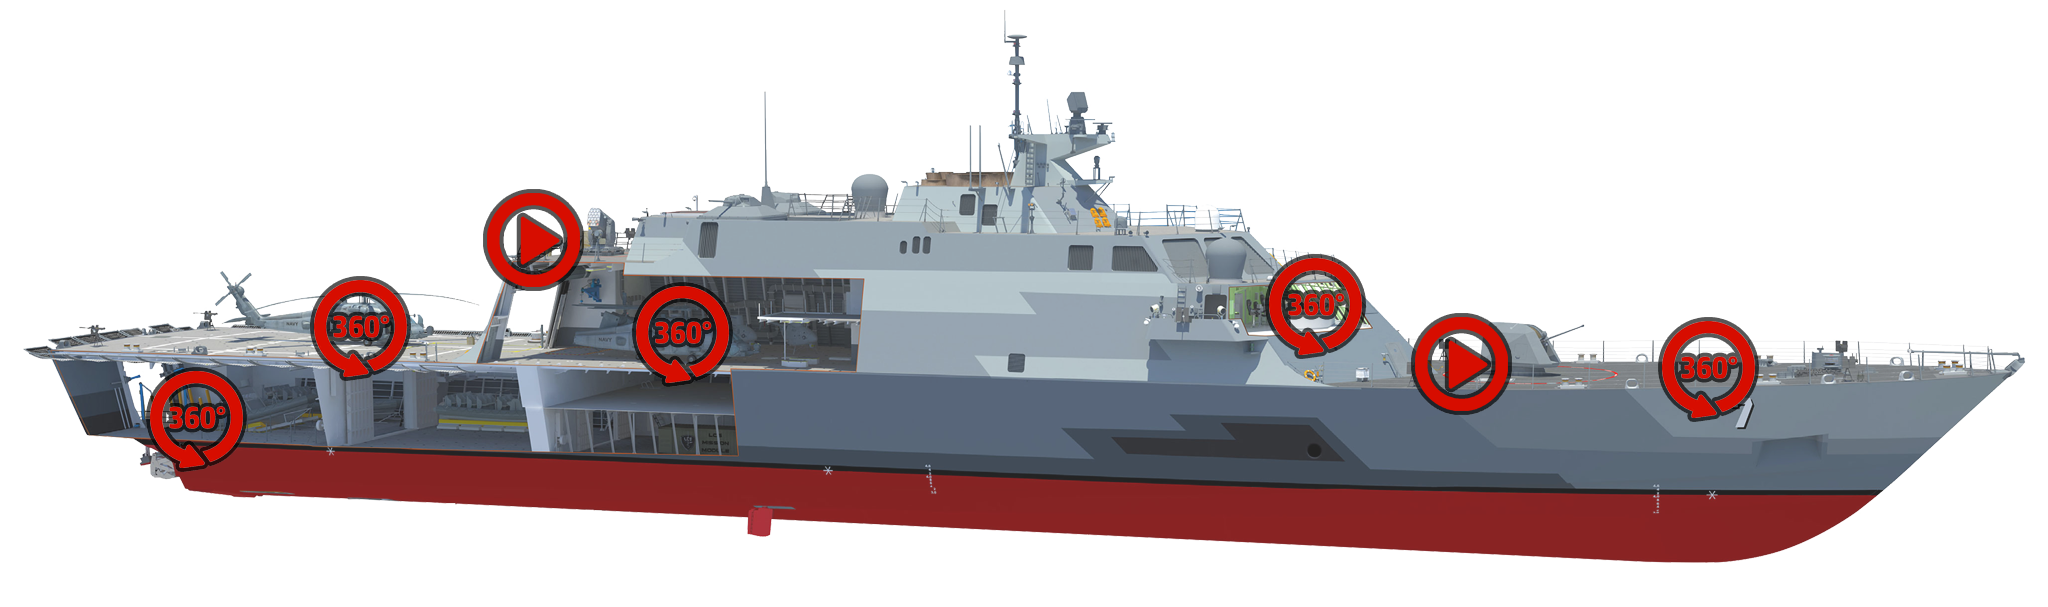 black and white stock Navy clipart frigate. Tour the uss detroit.